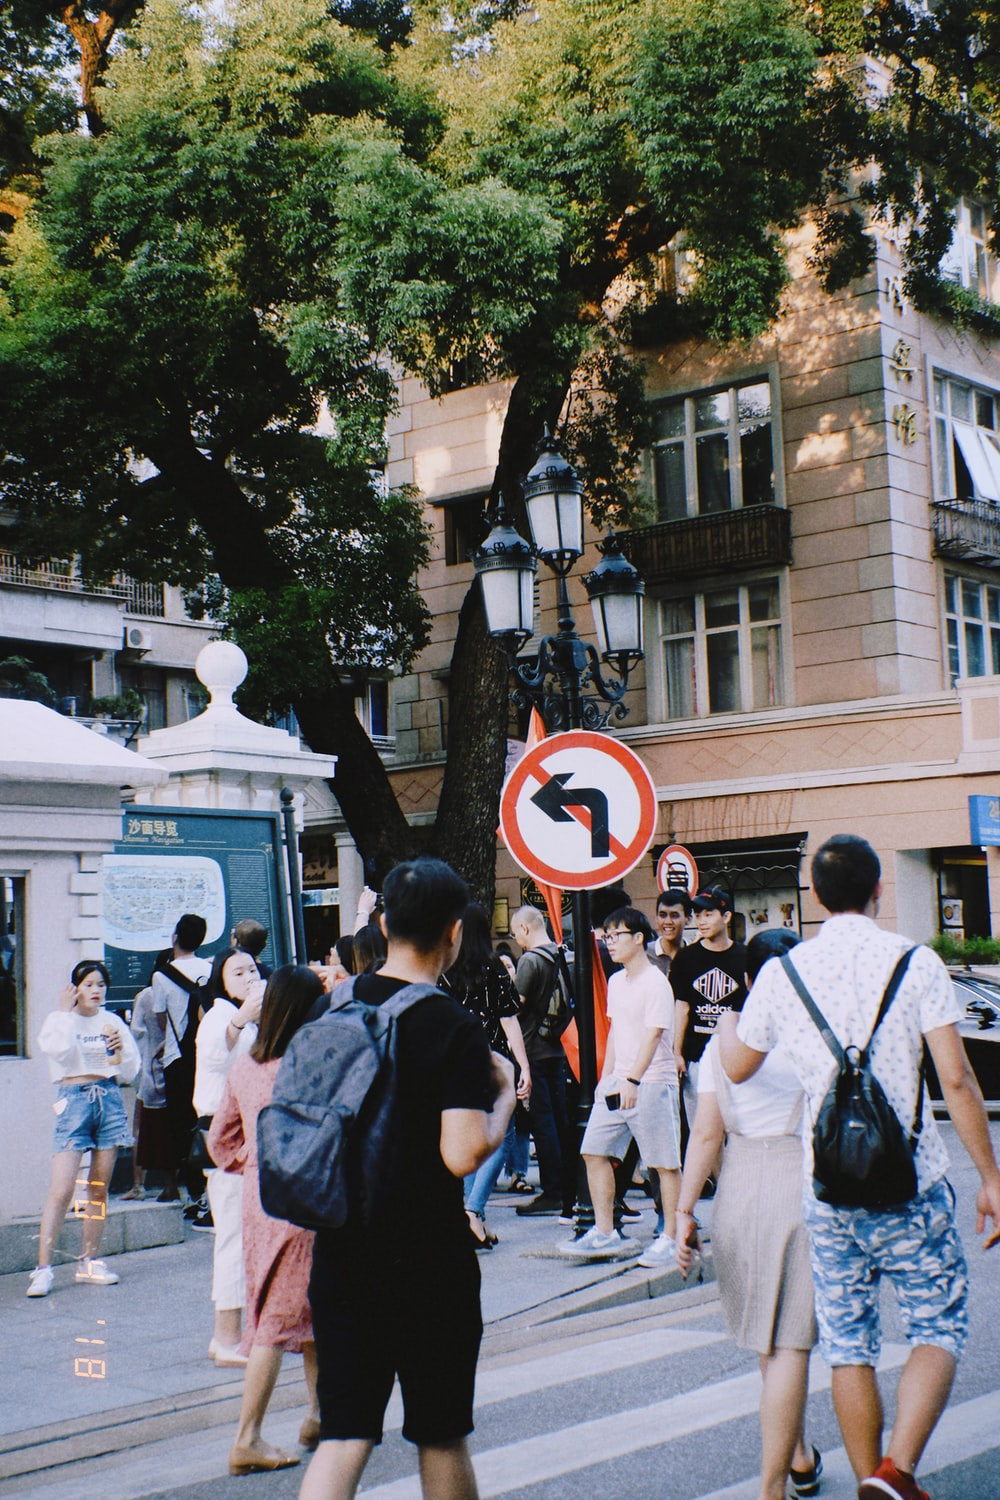 urban photo of a street with crowd